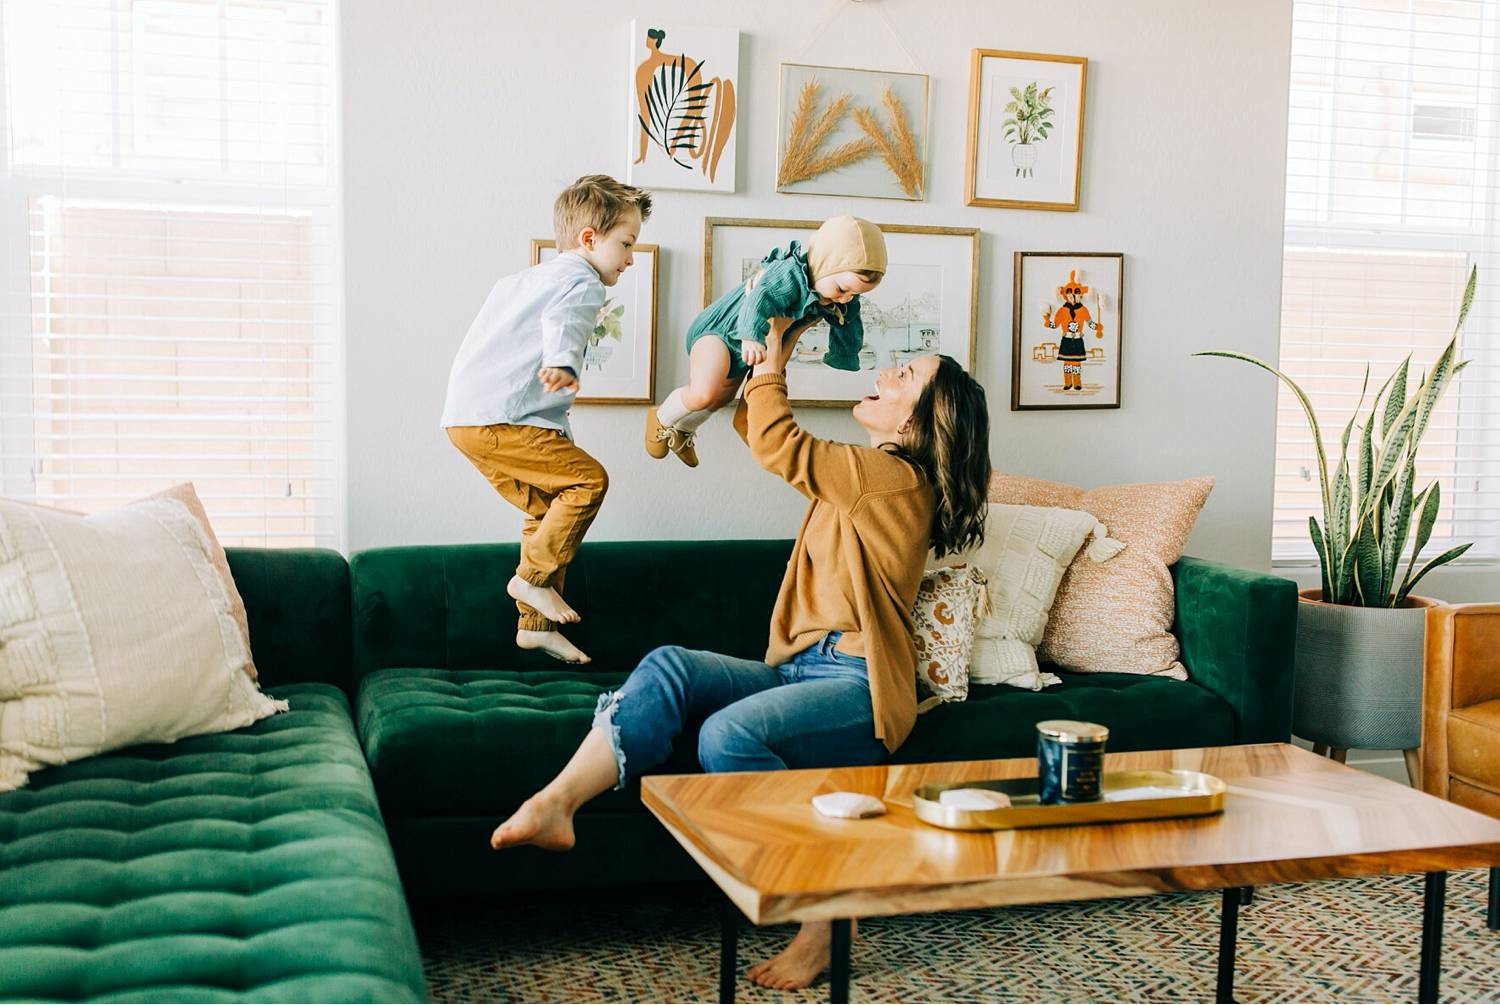 Photo: BreAnne Weston's lifestyle image shows a mom in a yellow shirt lifting her toddler daughter into the air as her young sun jumps on the green velvet sofa next to her.